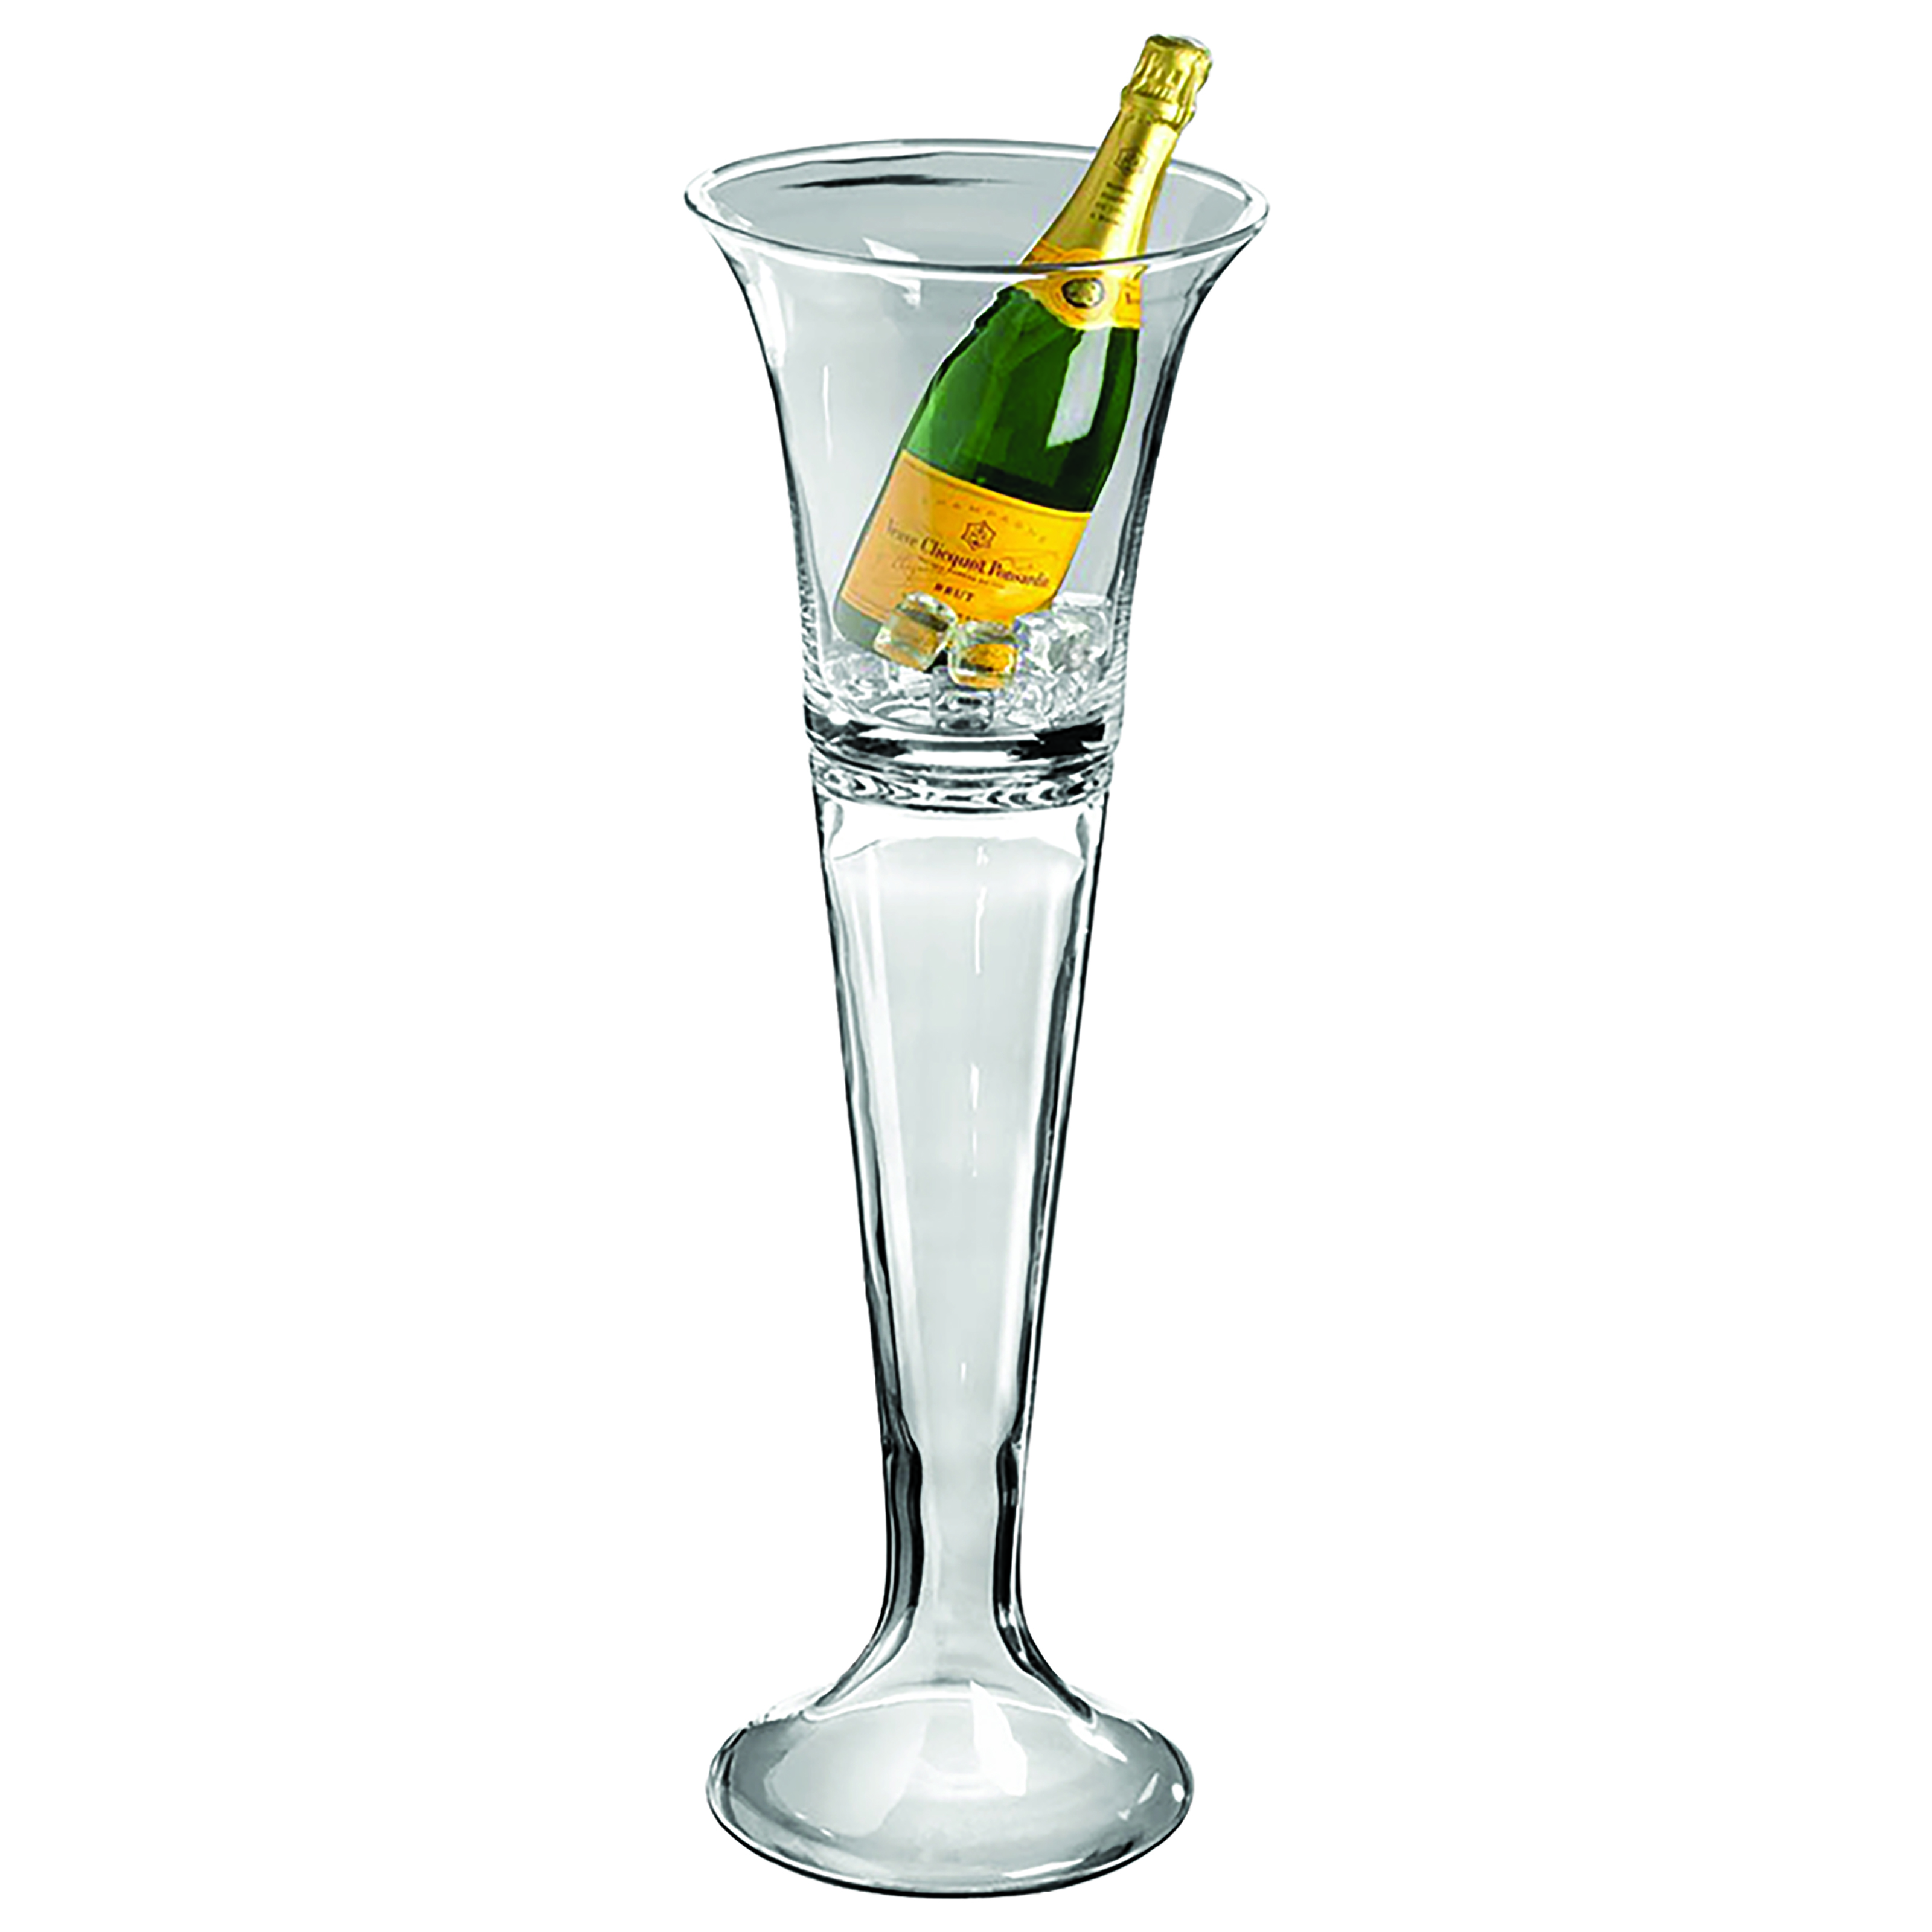 Vinolife Imperial Champagne Bucket W Stand 8115 Distributor Of Fine Wine Accessories And Kitchenware Products